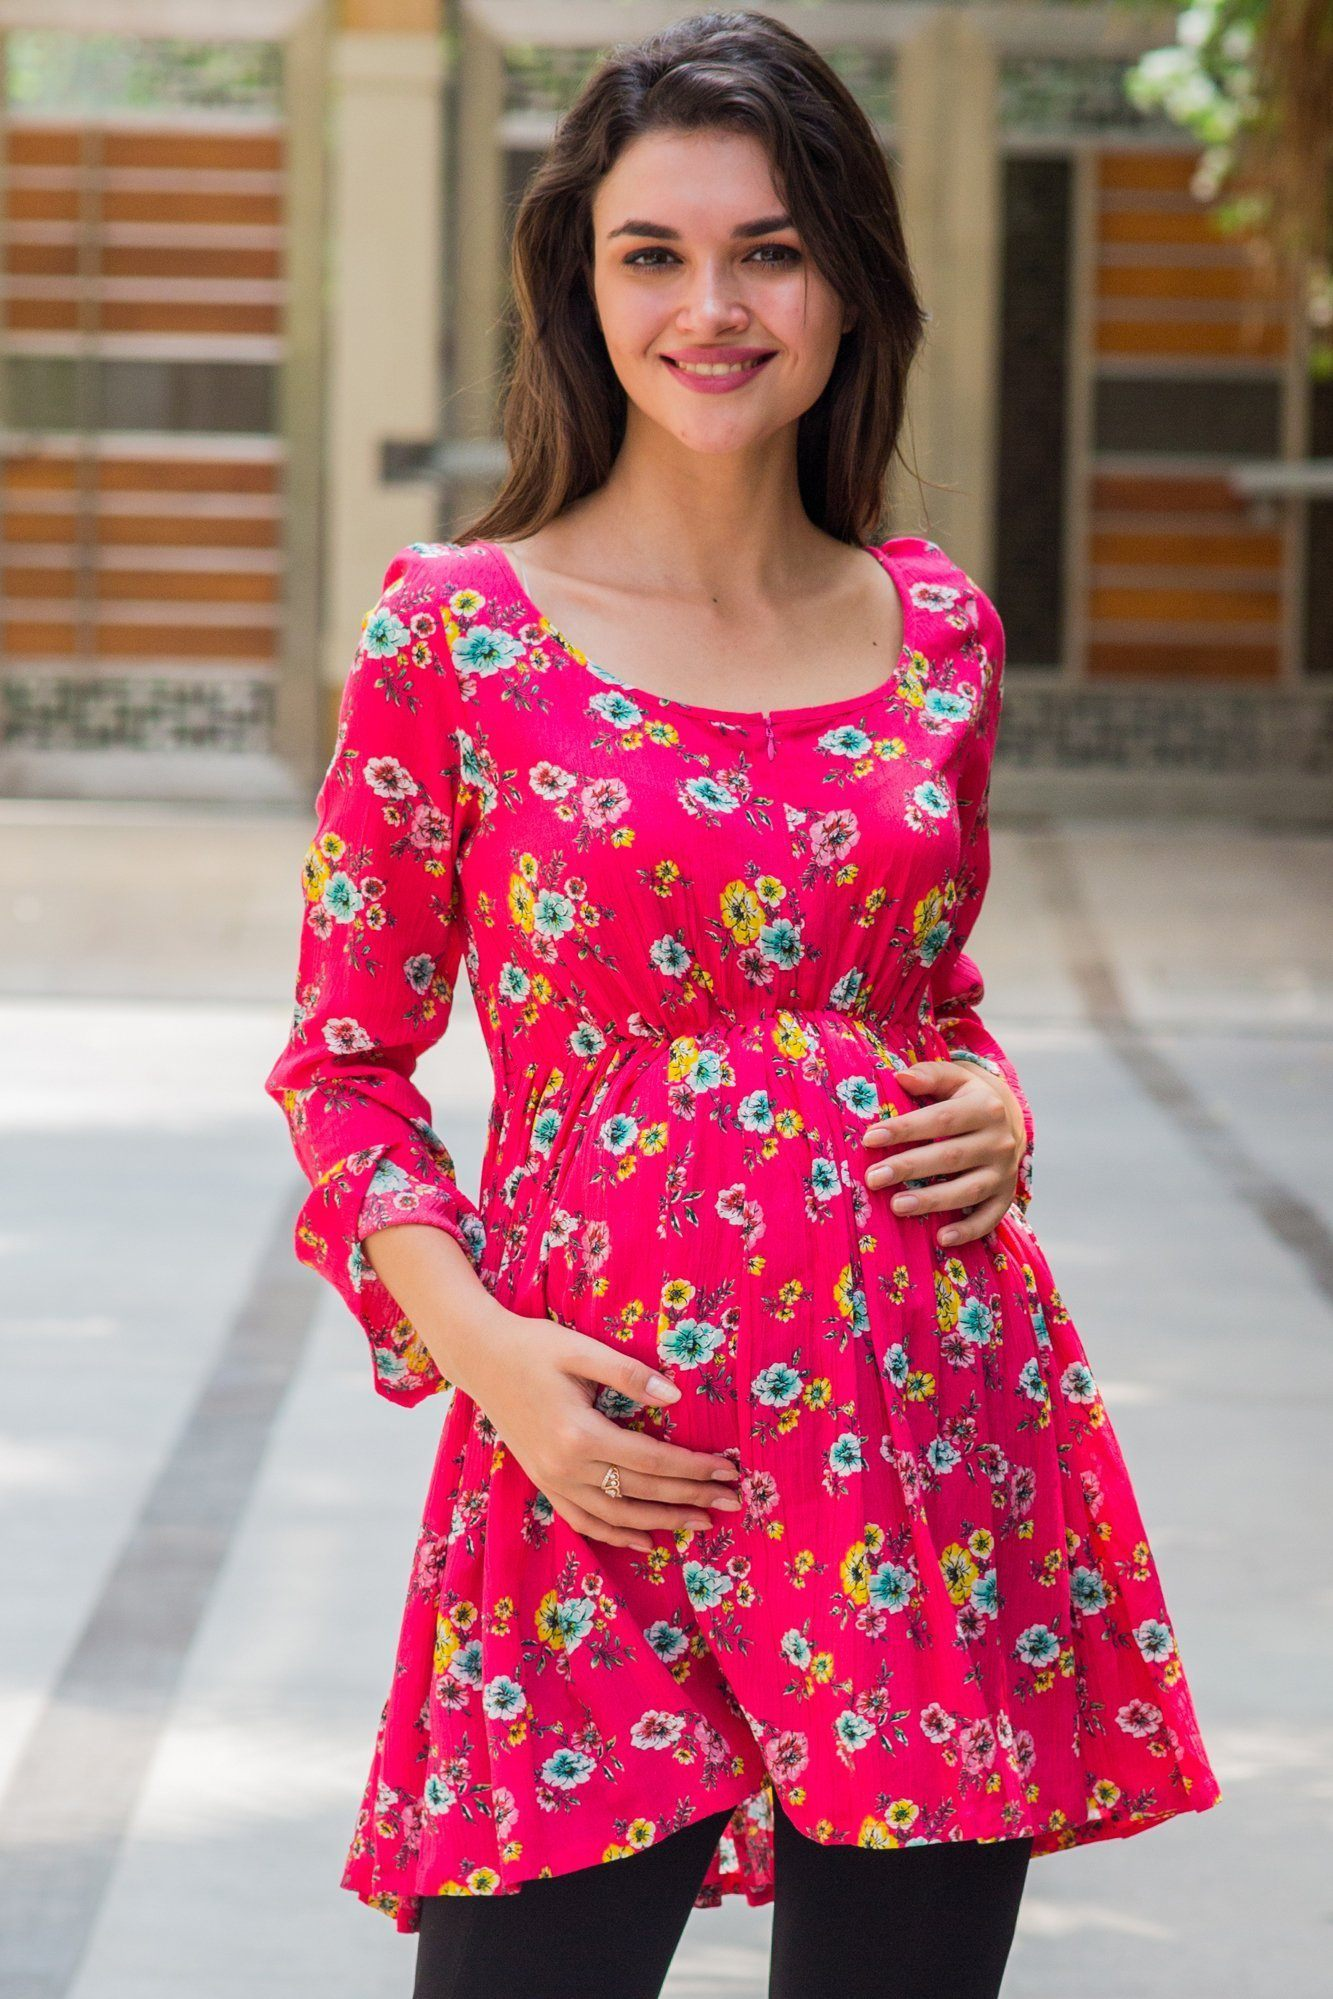 Peony Pink Floral Gathered Bell Sleeves Nursing Top